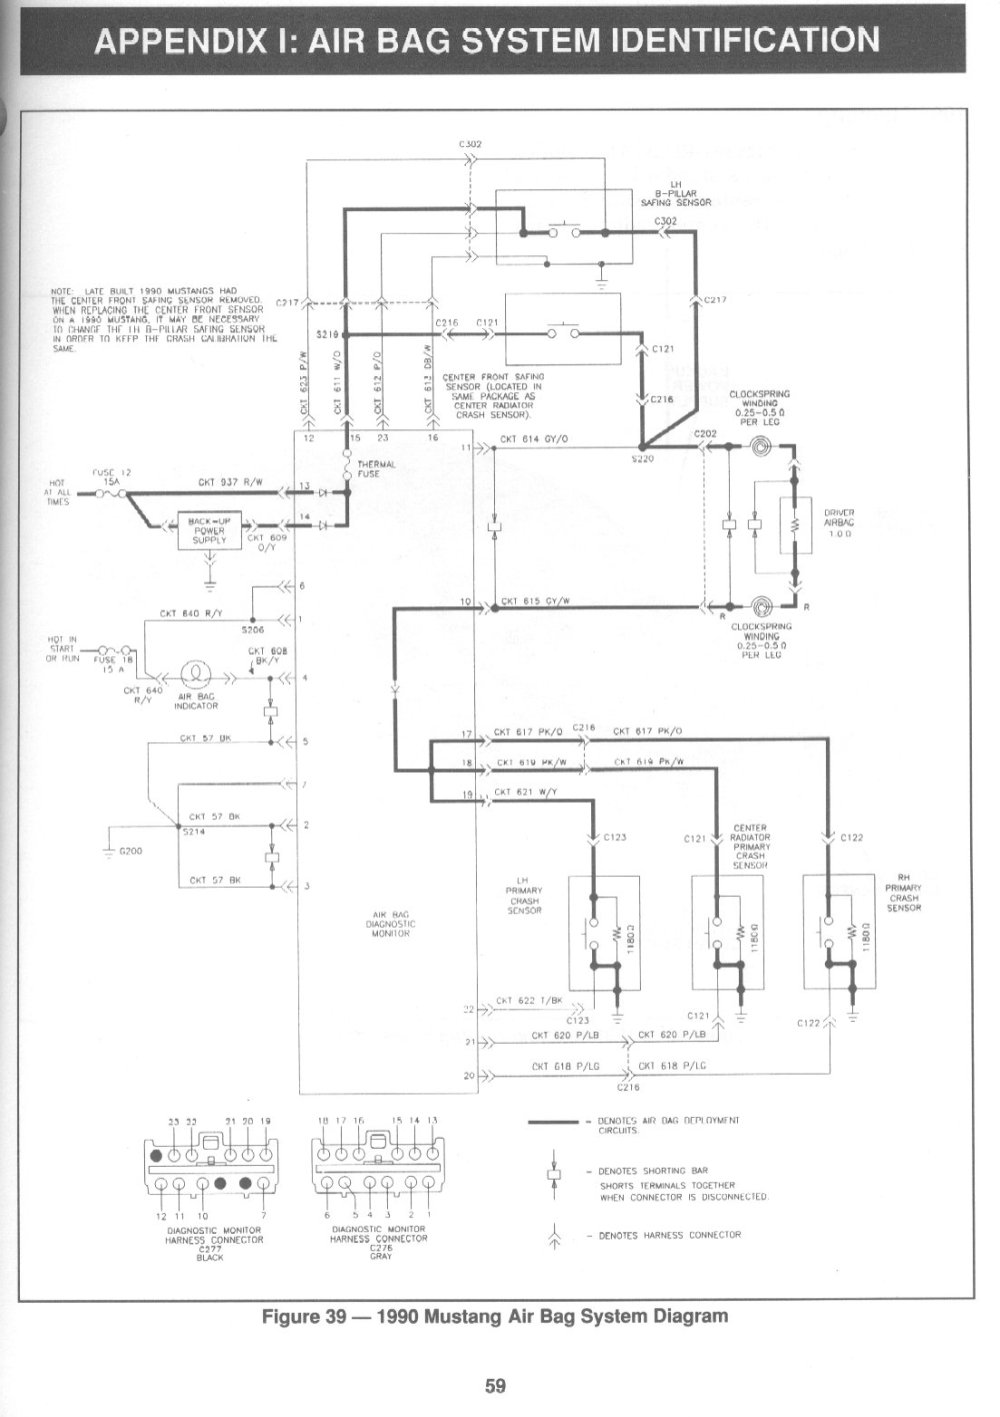 medium resolution of schematic of the air bag system for the 1990 mustang